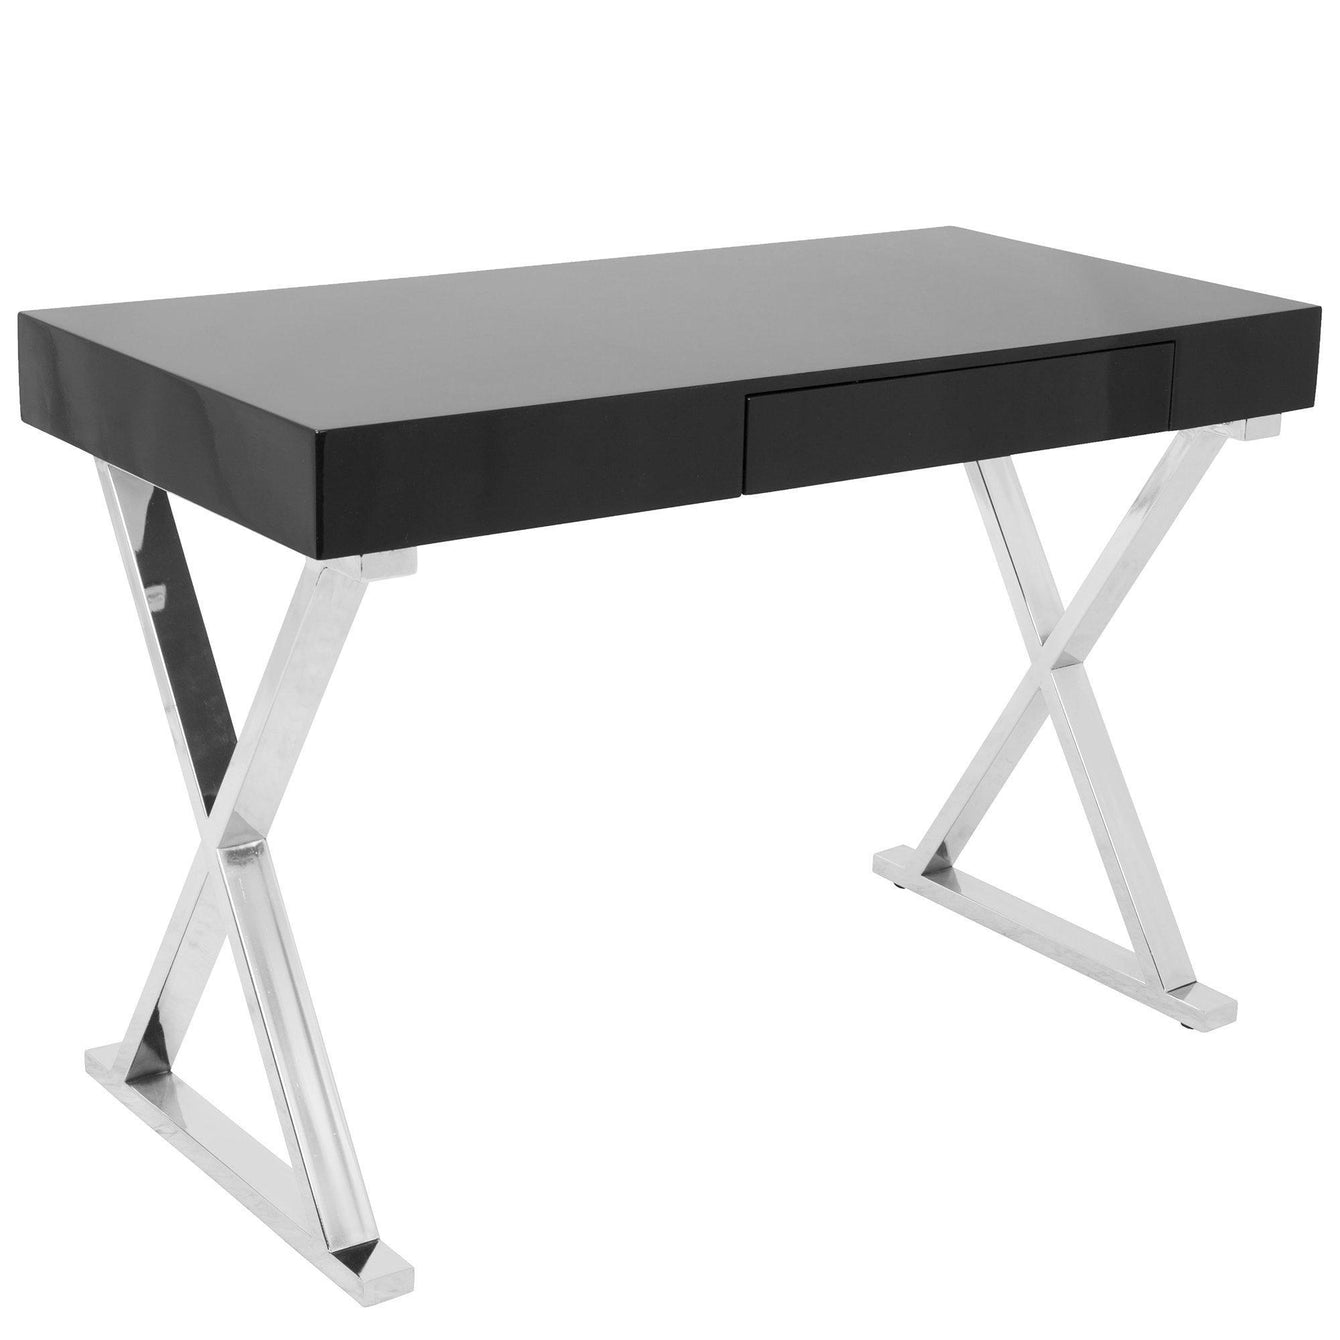 Luster Contemporary Desk in Black-LUMISOURCE-Peccadilly